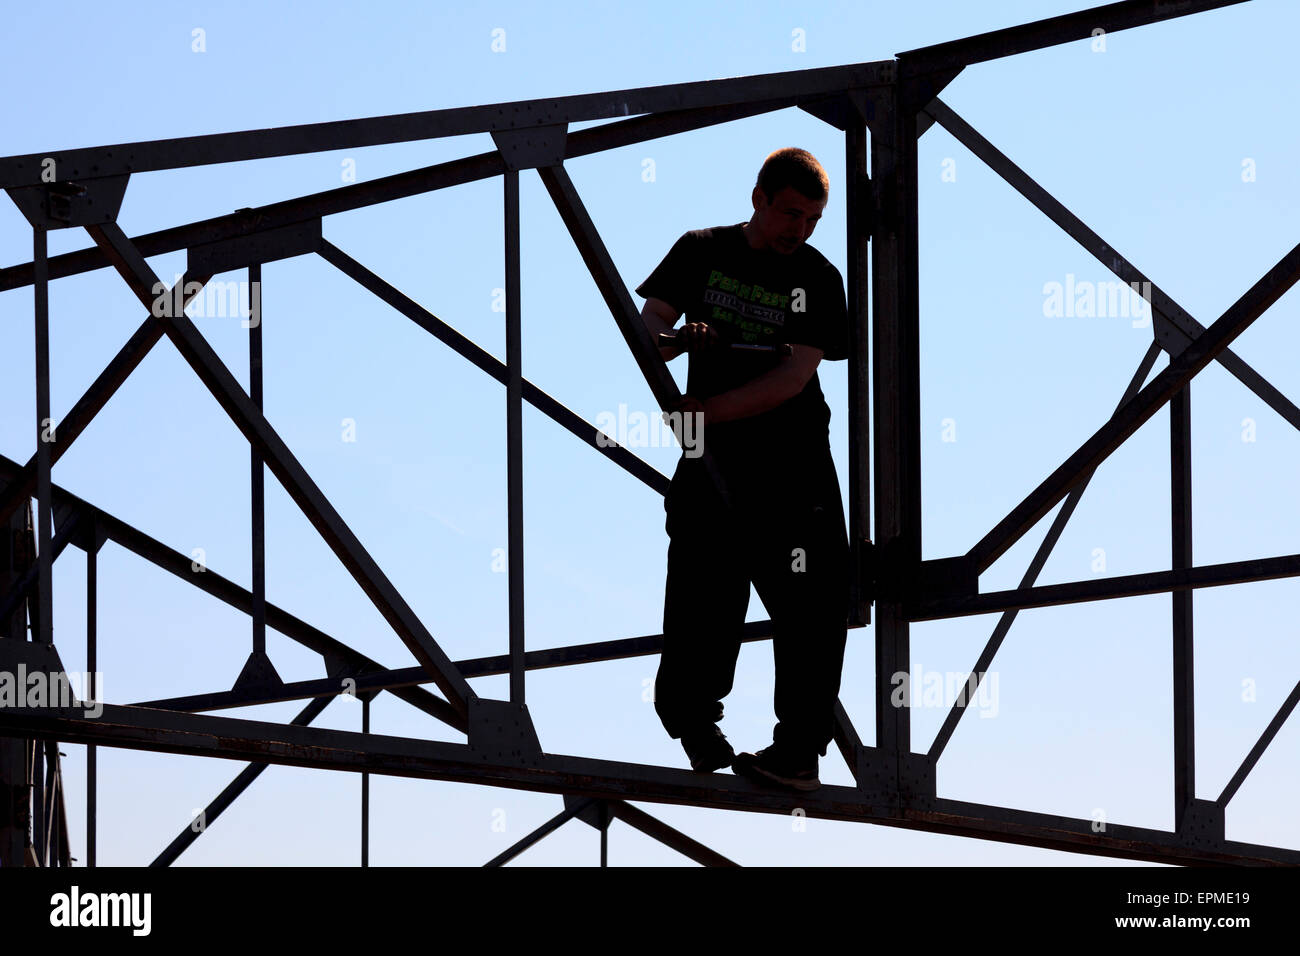 Rigger working amongst steel framework without safety equipment - Stock Image